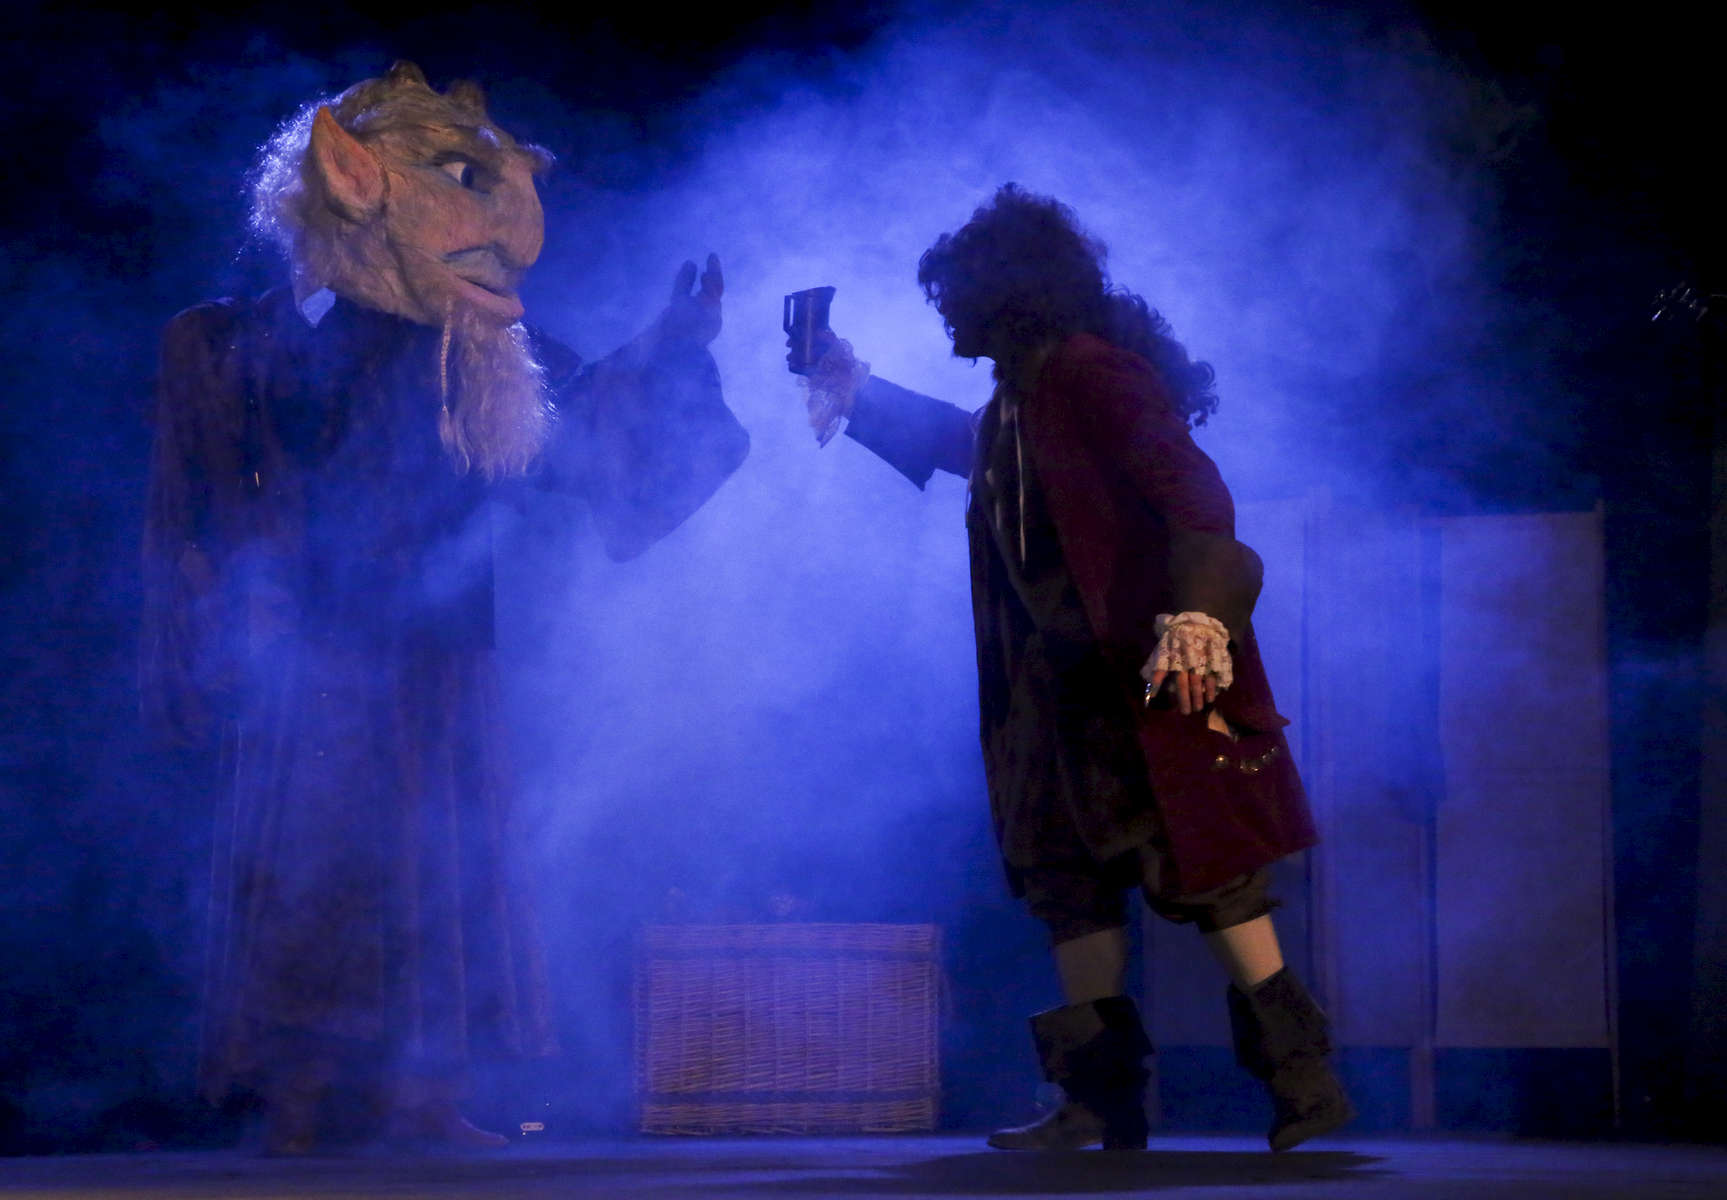 Master Cat. played by Arnaud Leray cheers with the ogre played by Thierry Peteau.